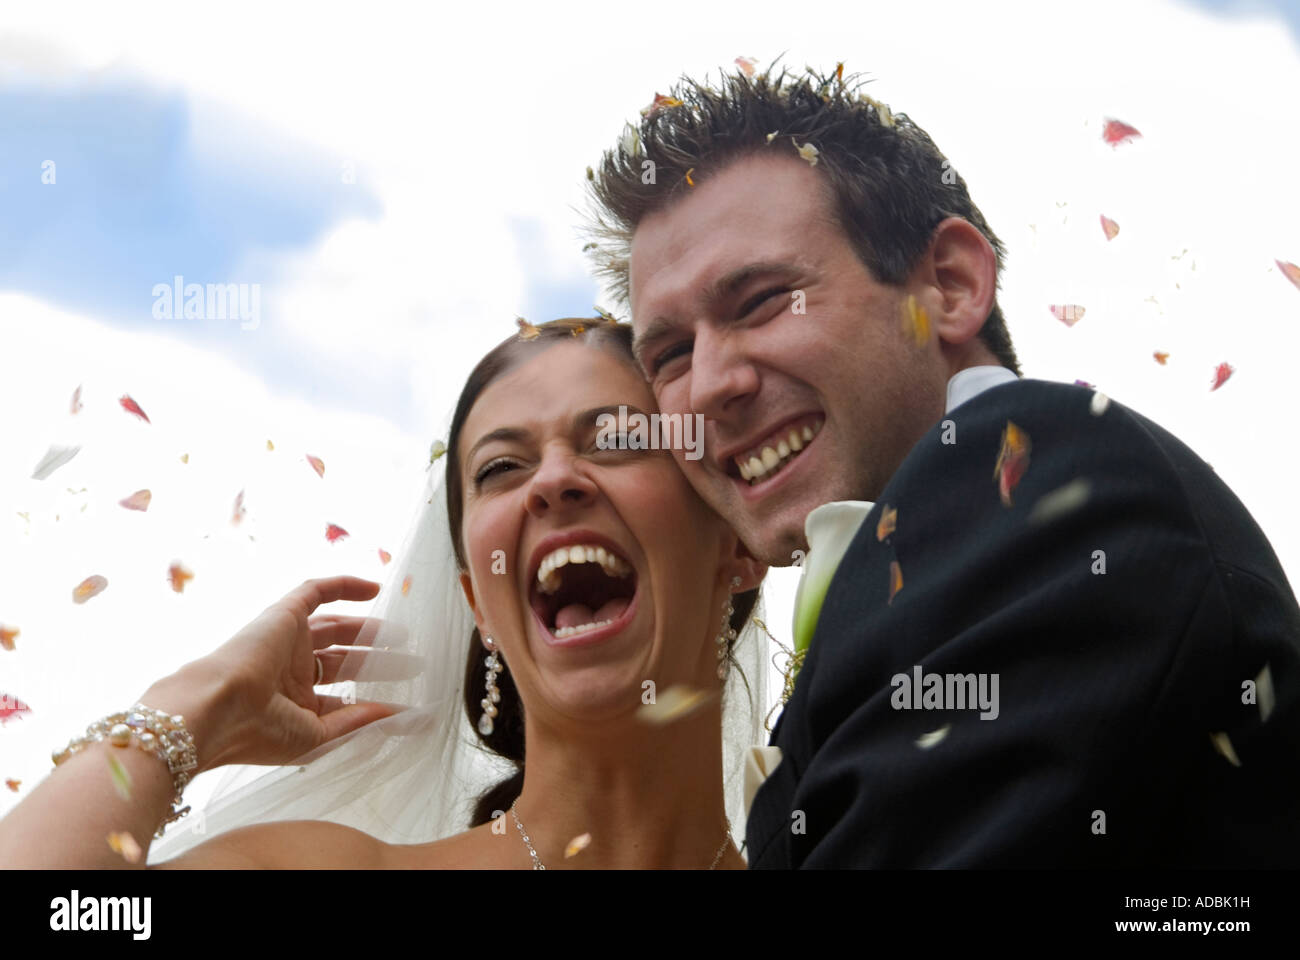 Horizontal portrait of the happy bride and groom at their wedding, traditionally having confetti thrown over them - Stock Image